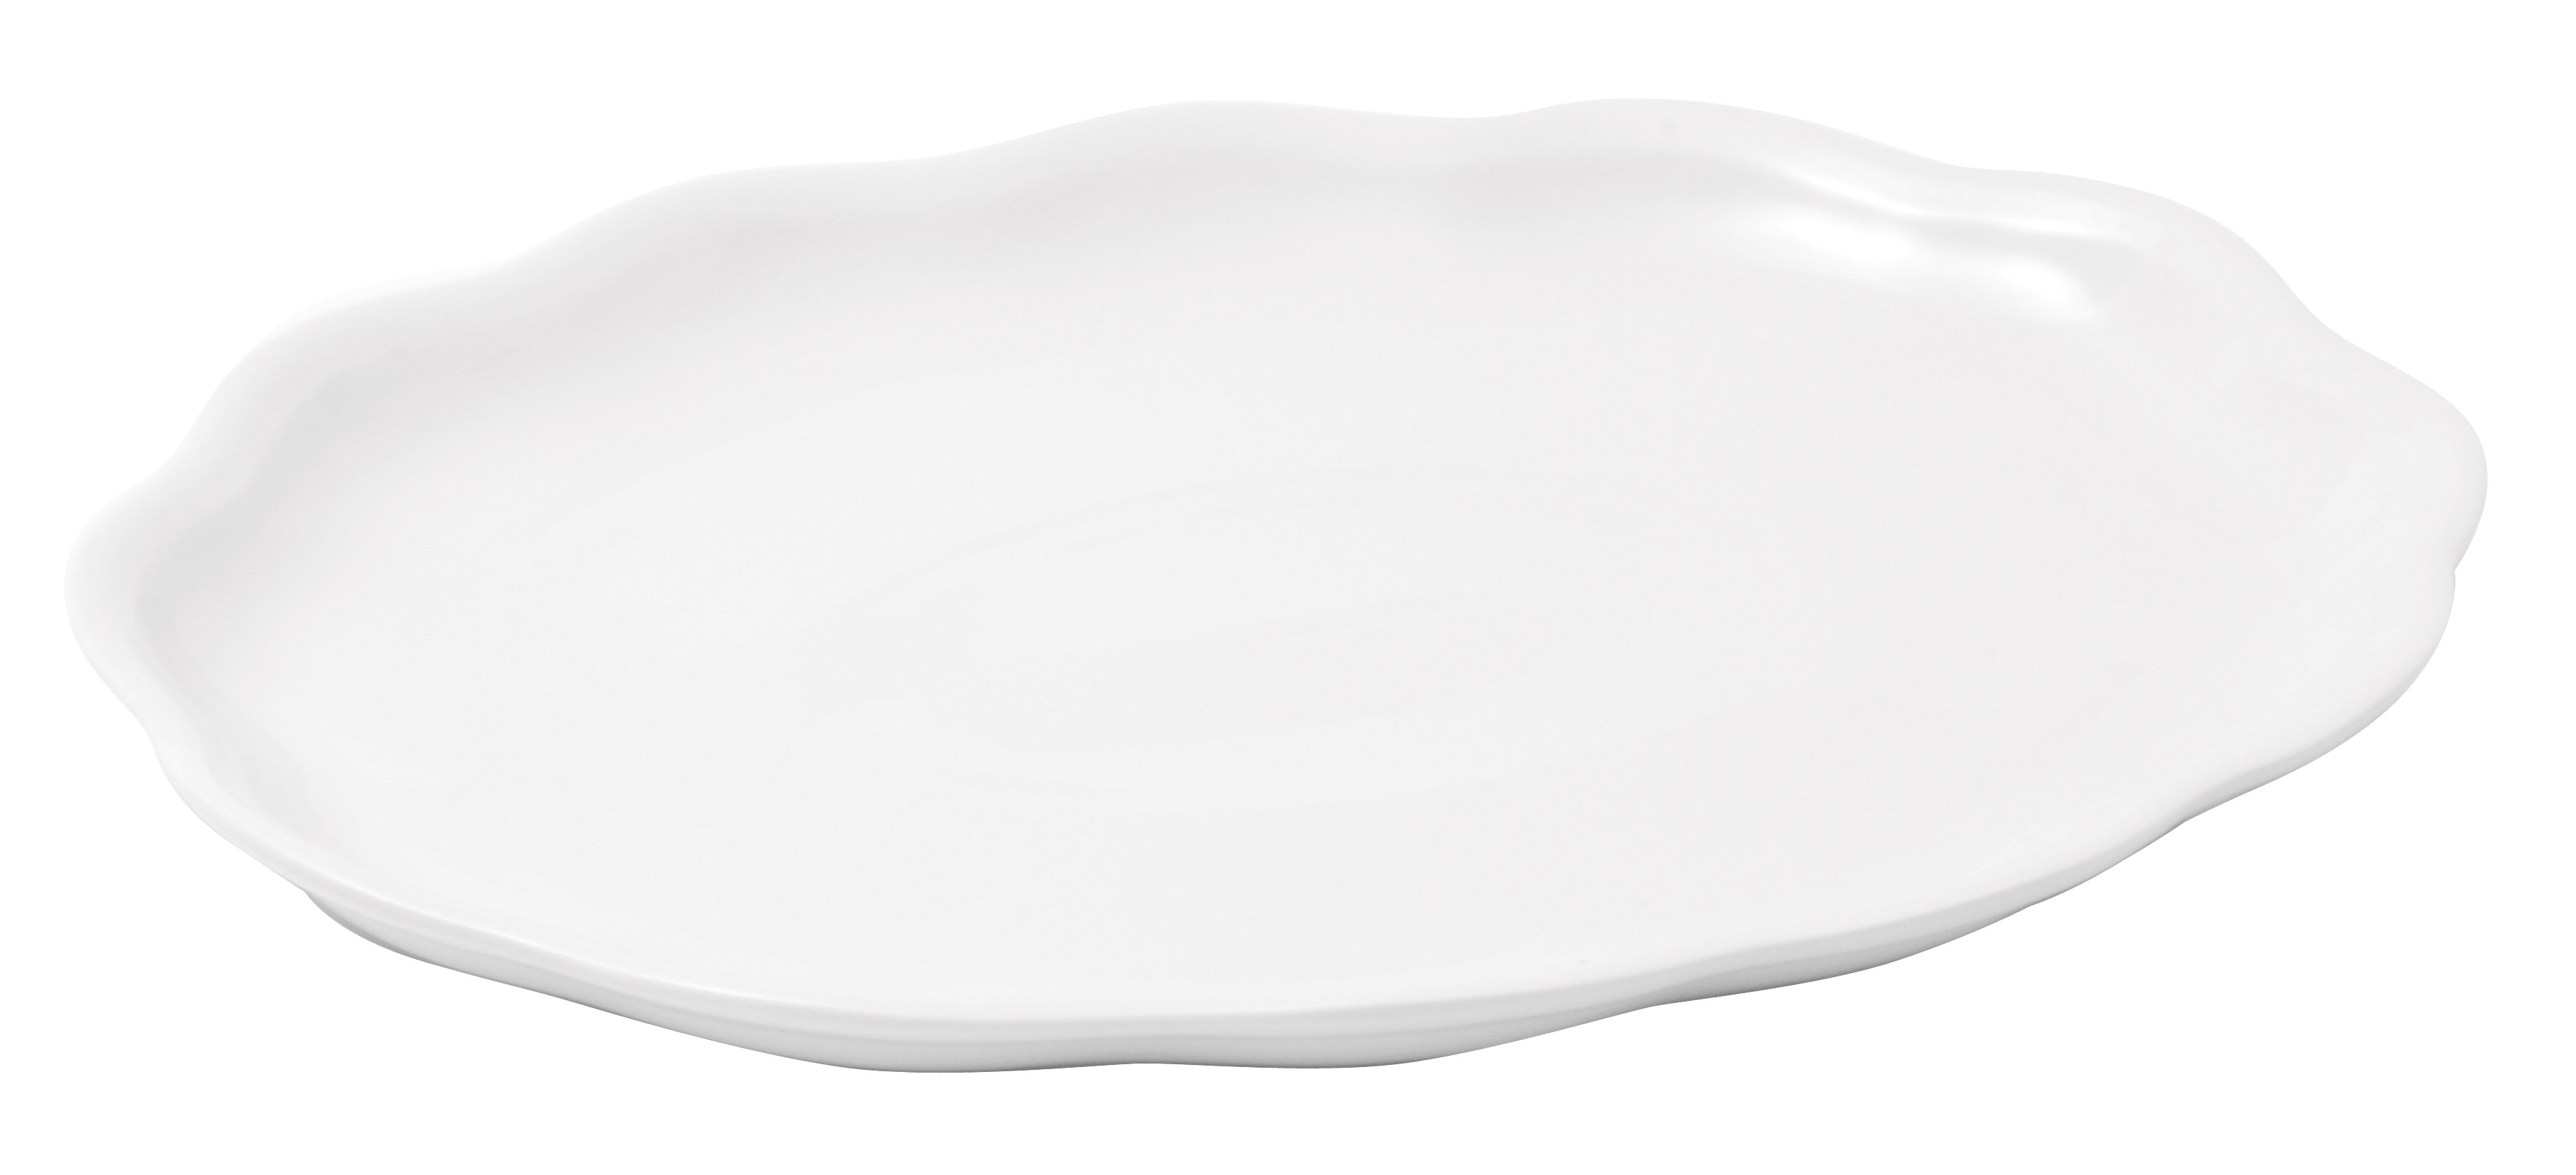 OVAL PLATE - 31.5 x 40cm (1)